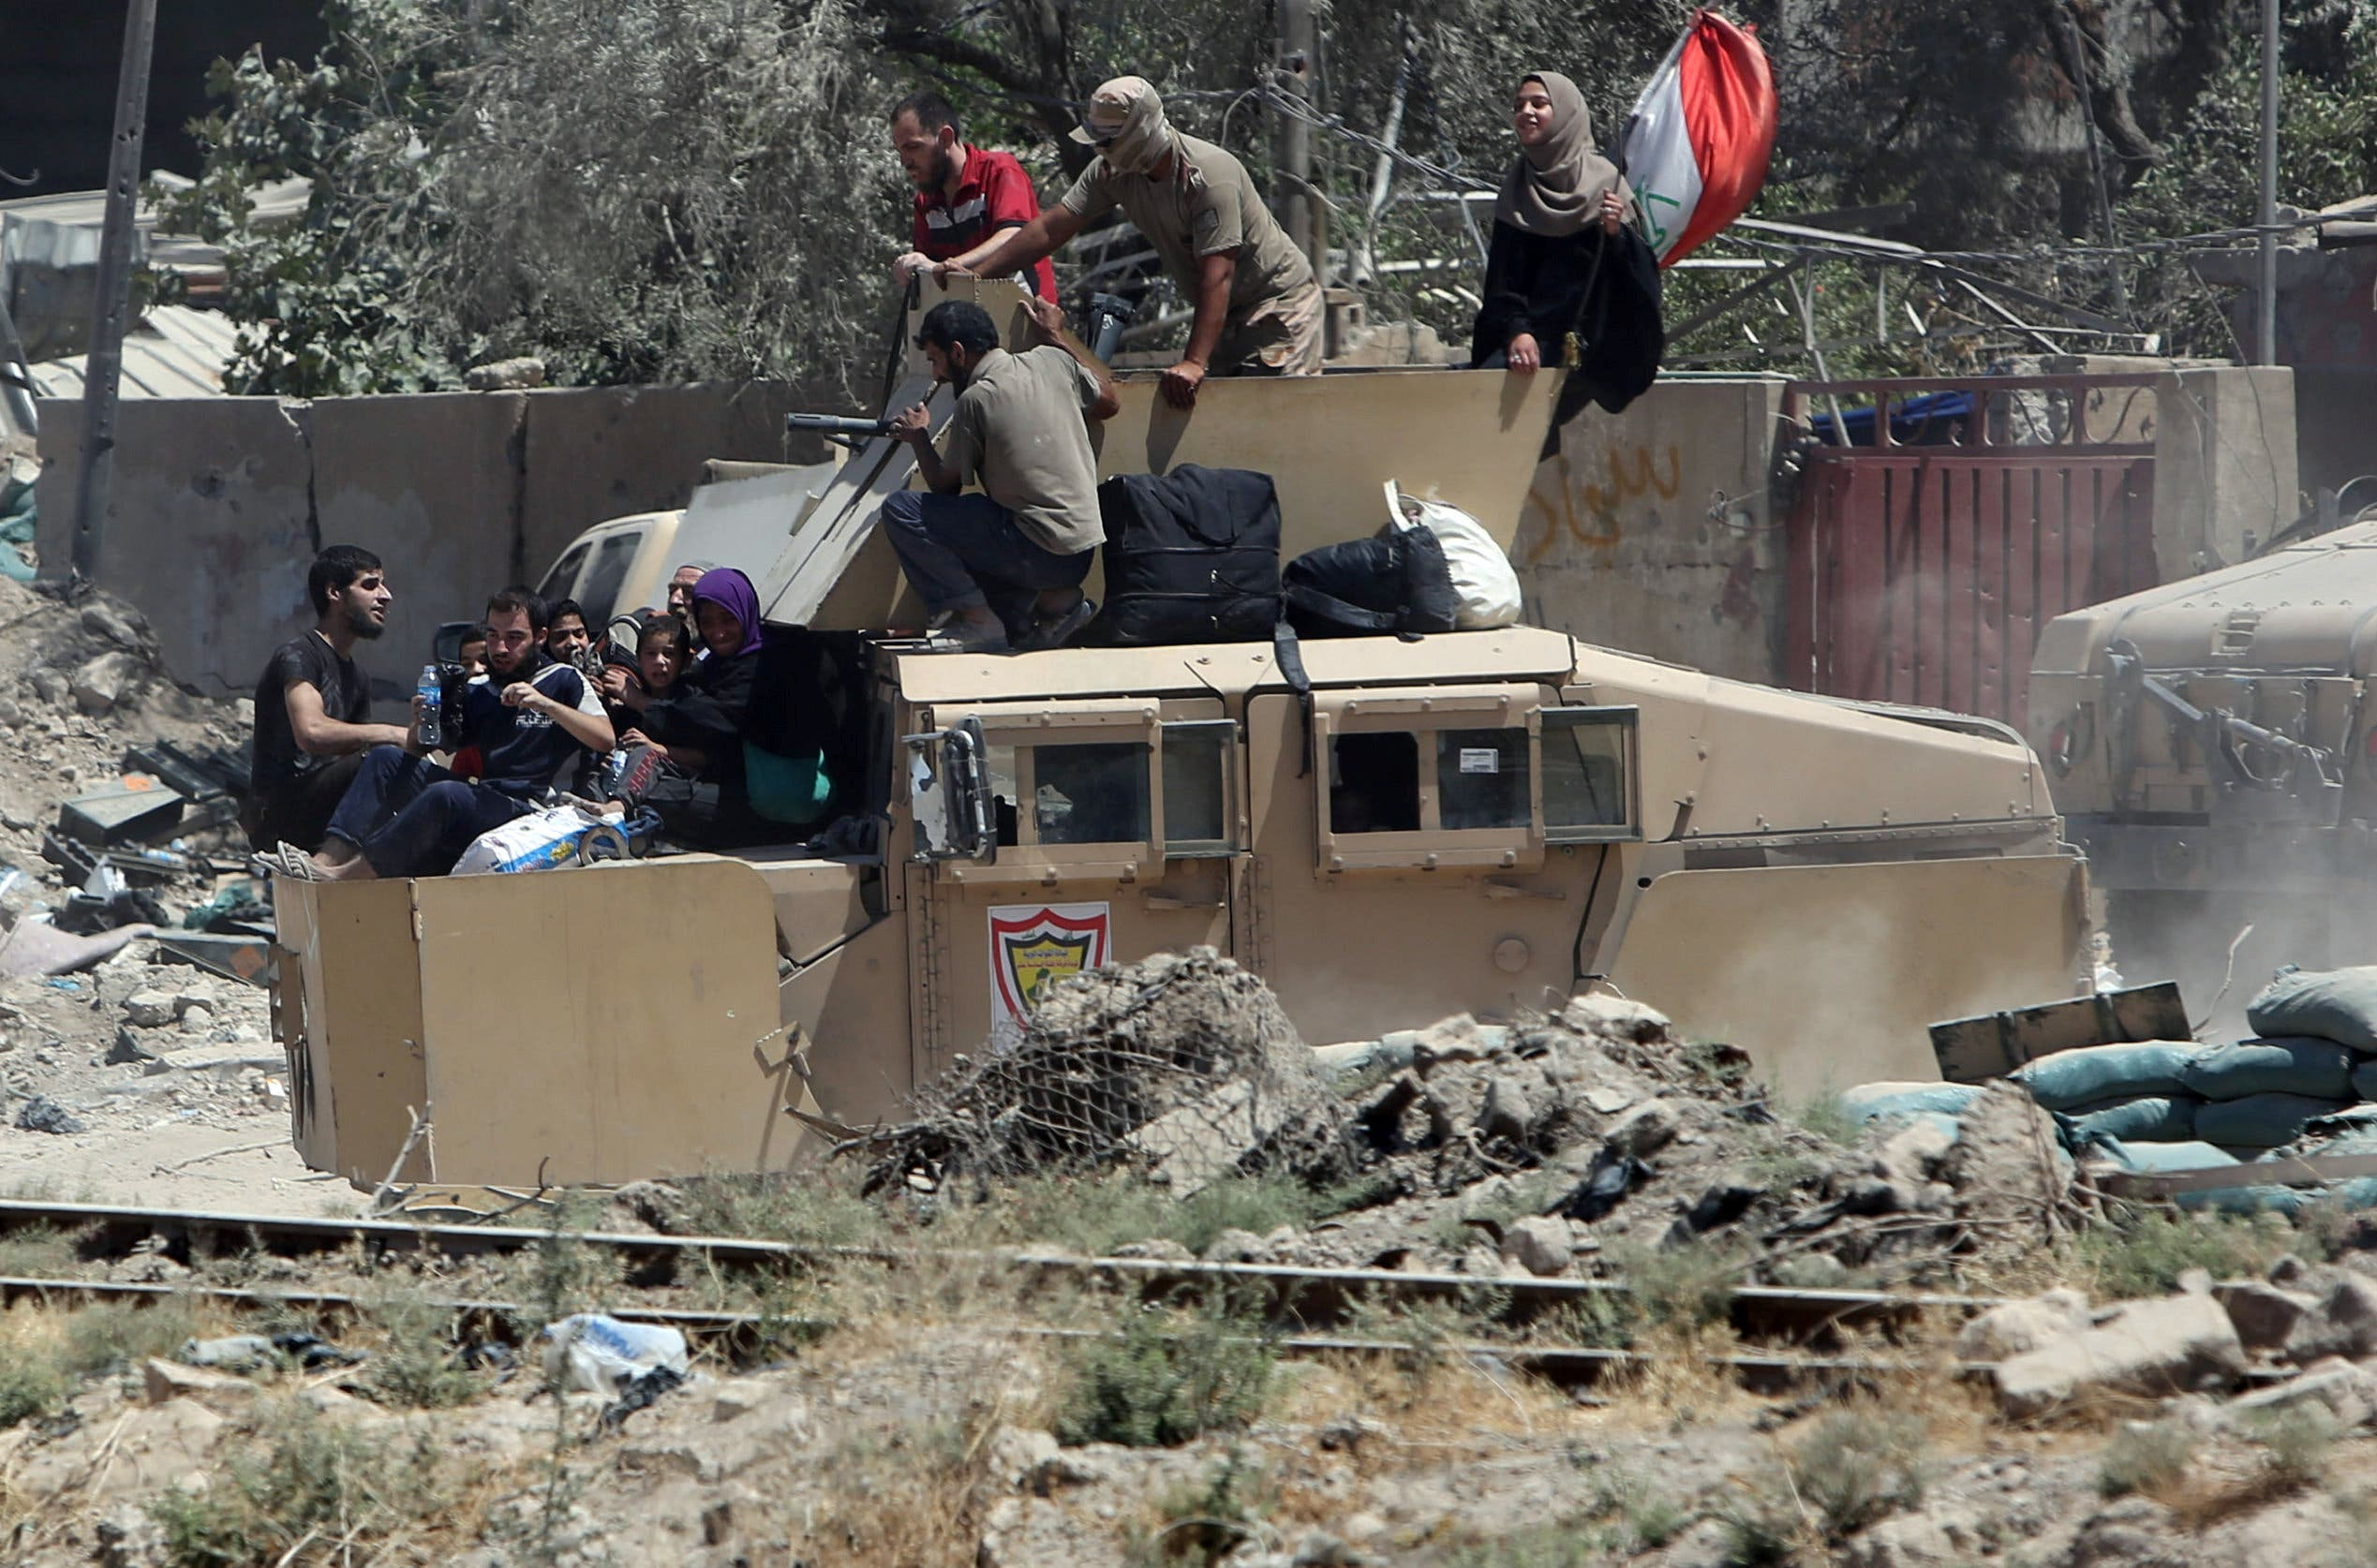 Iraqi security forces transport displaced civilians with an armoured fighting vehicle out of West Mosul during fighting with Islamic State militants in the Old City of Mosul, Iraq June 24, 2017. (Reuters)